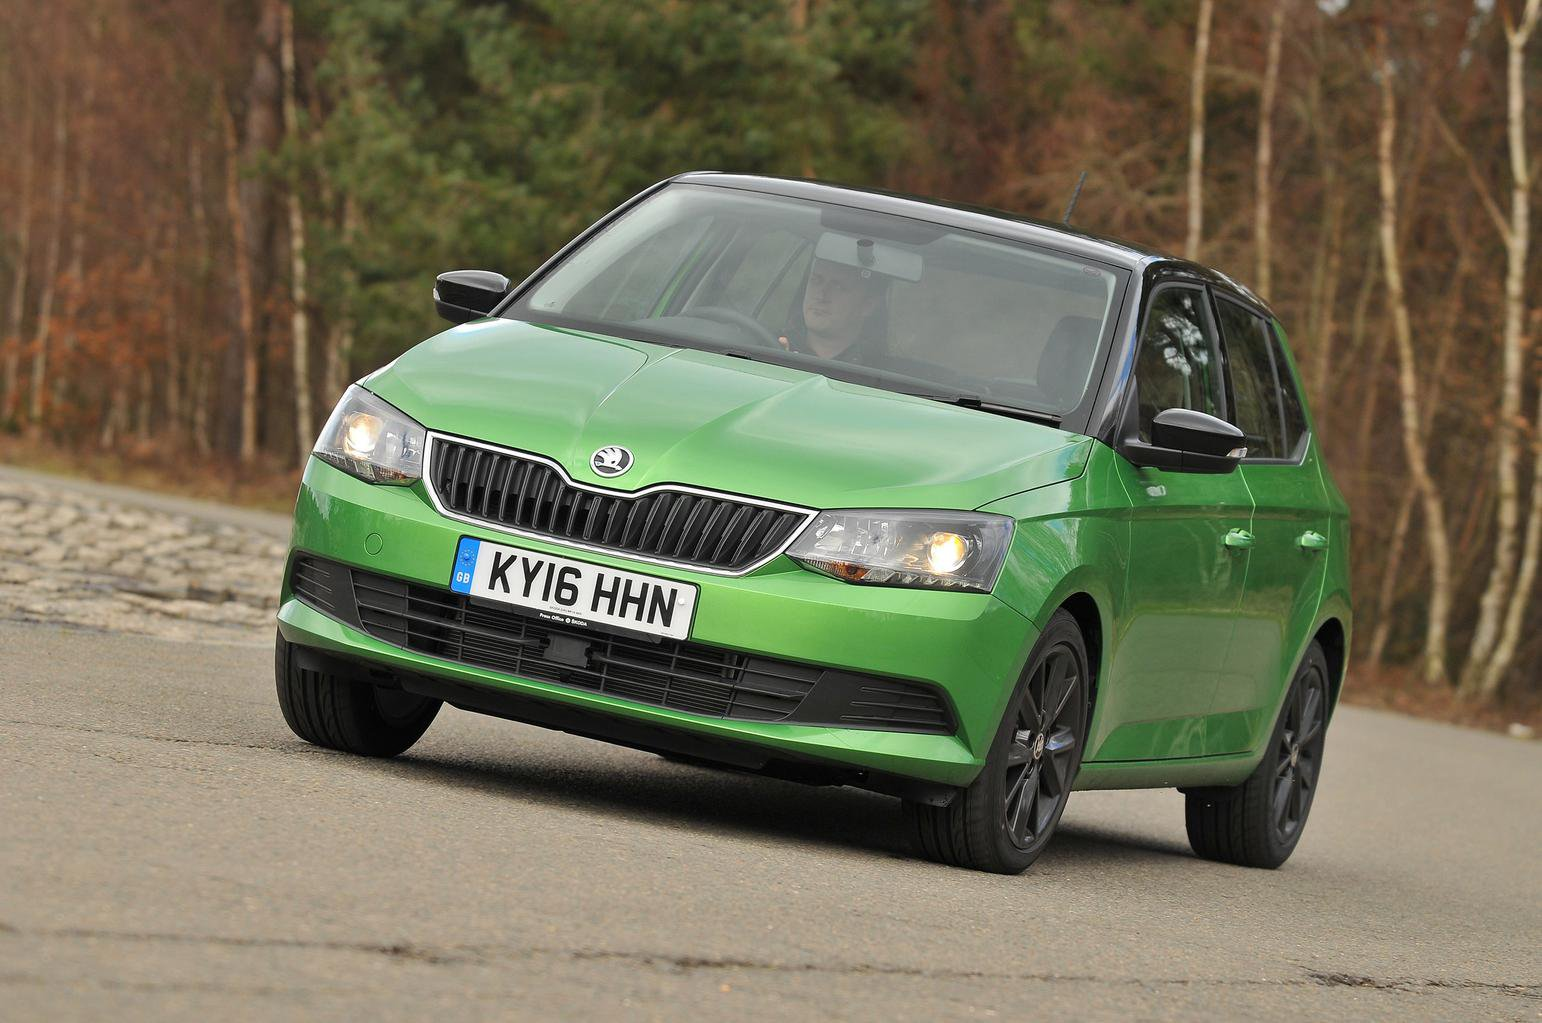 2016 Skoda Fabia 1.2 TSI Colour Edition review